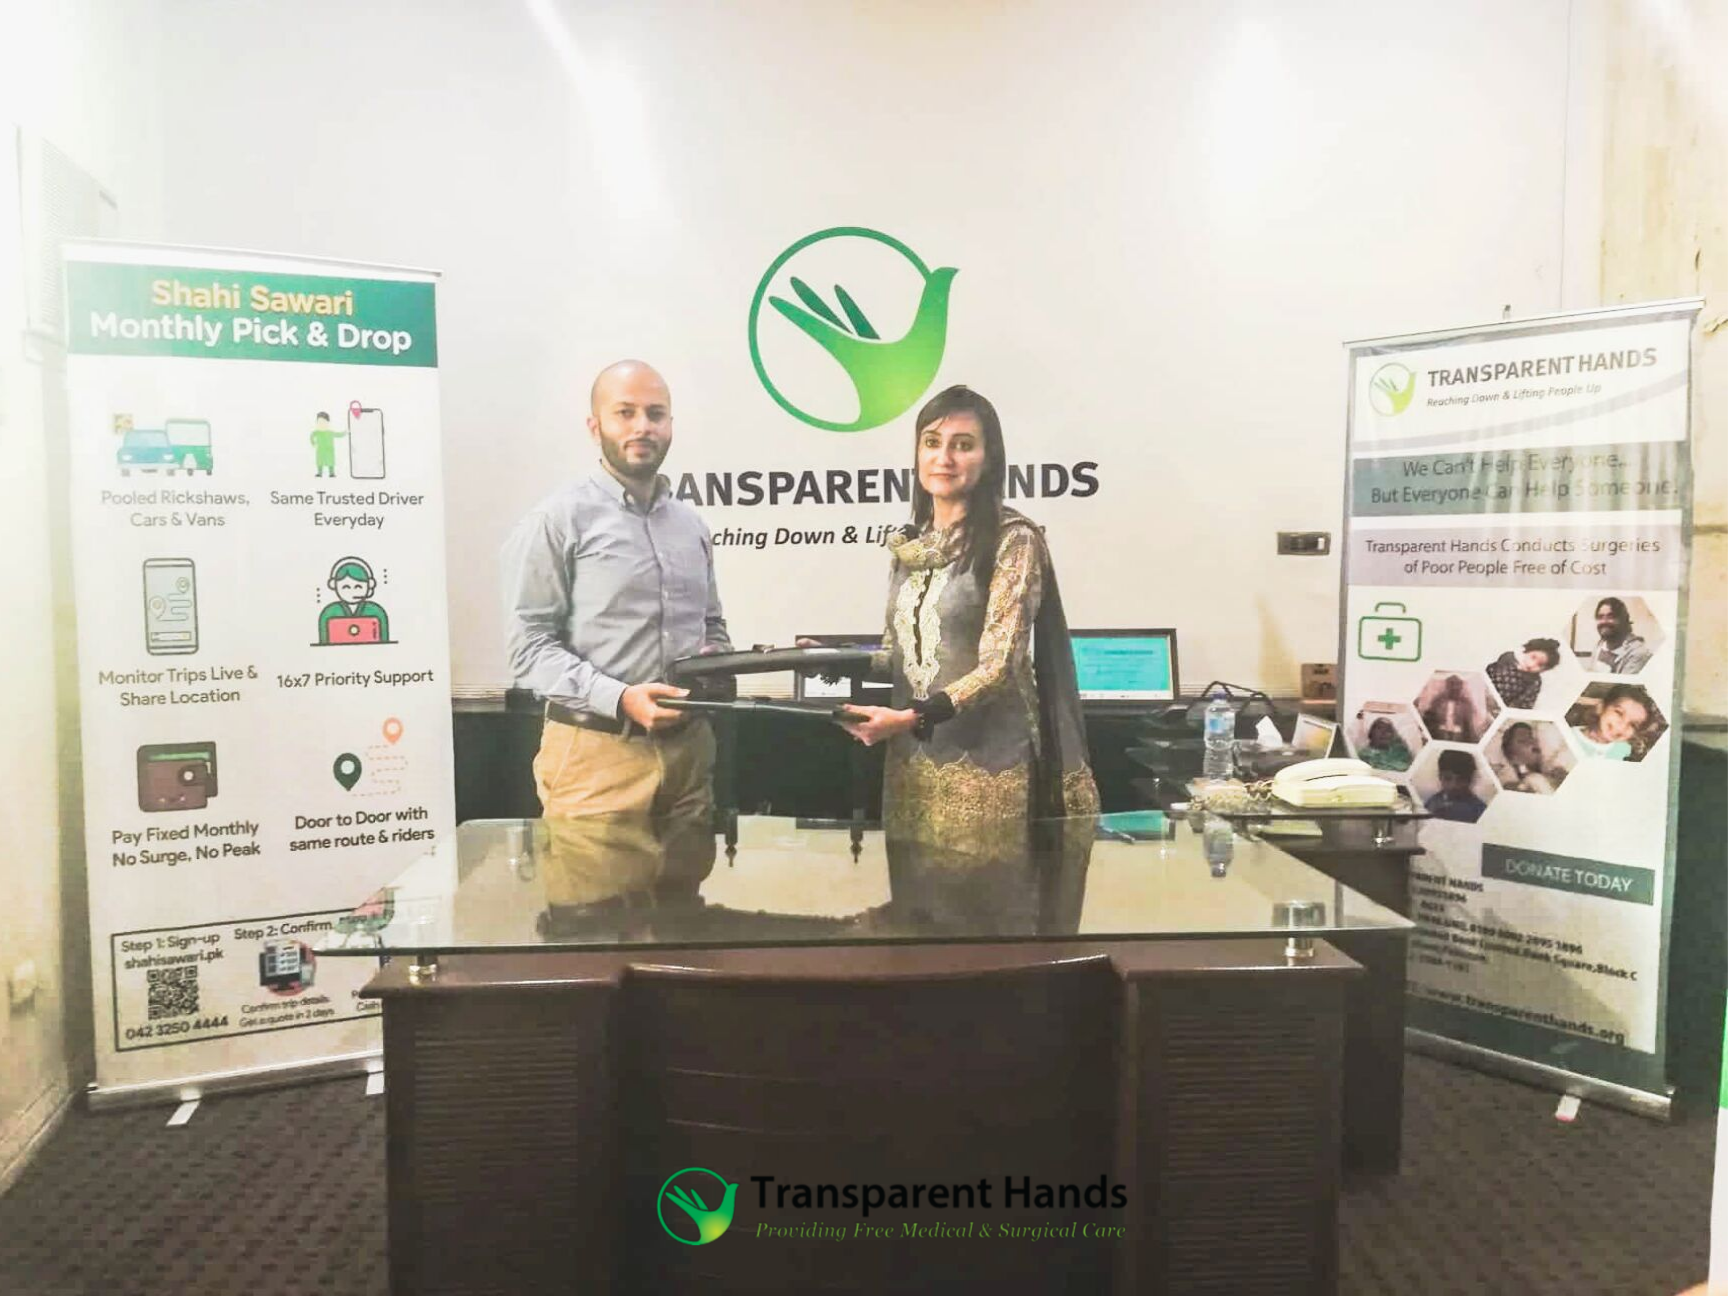 Transparent Hands Collaborates with Shahi Sawari